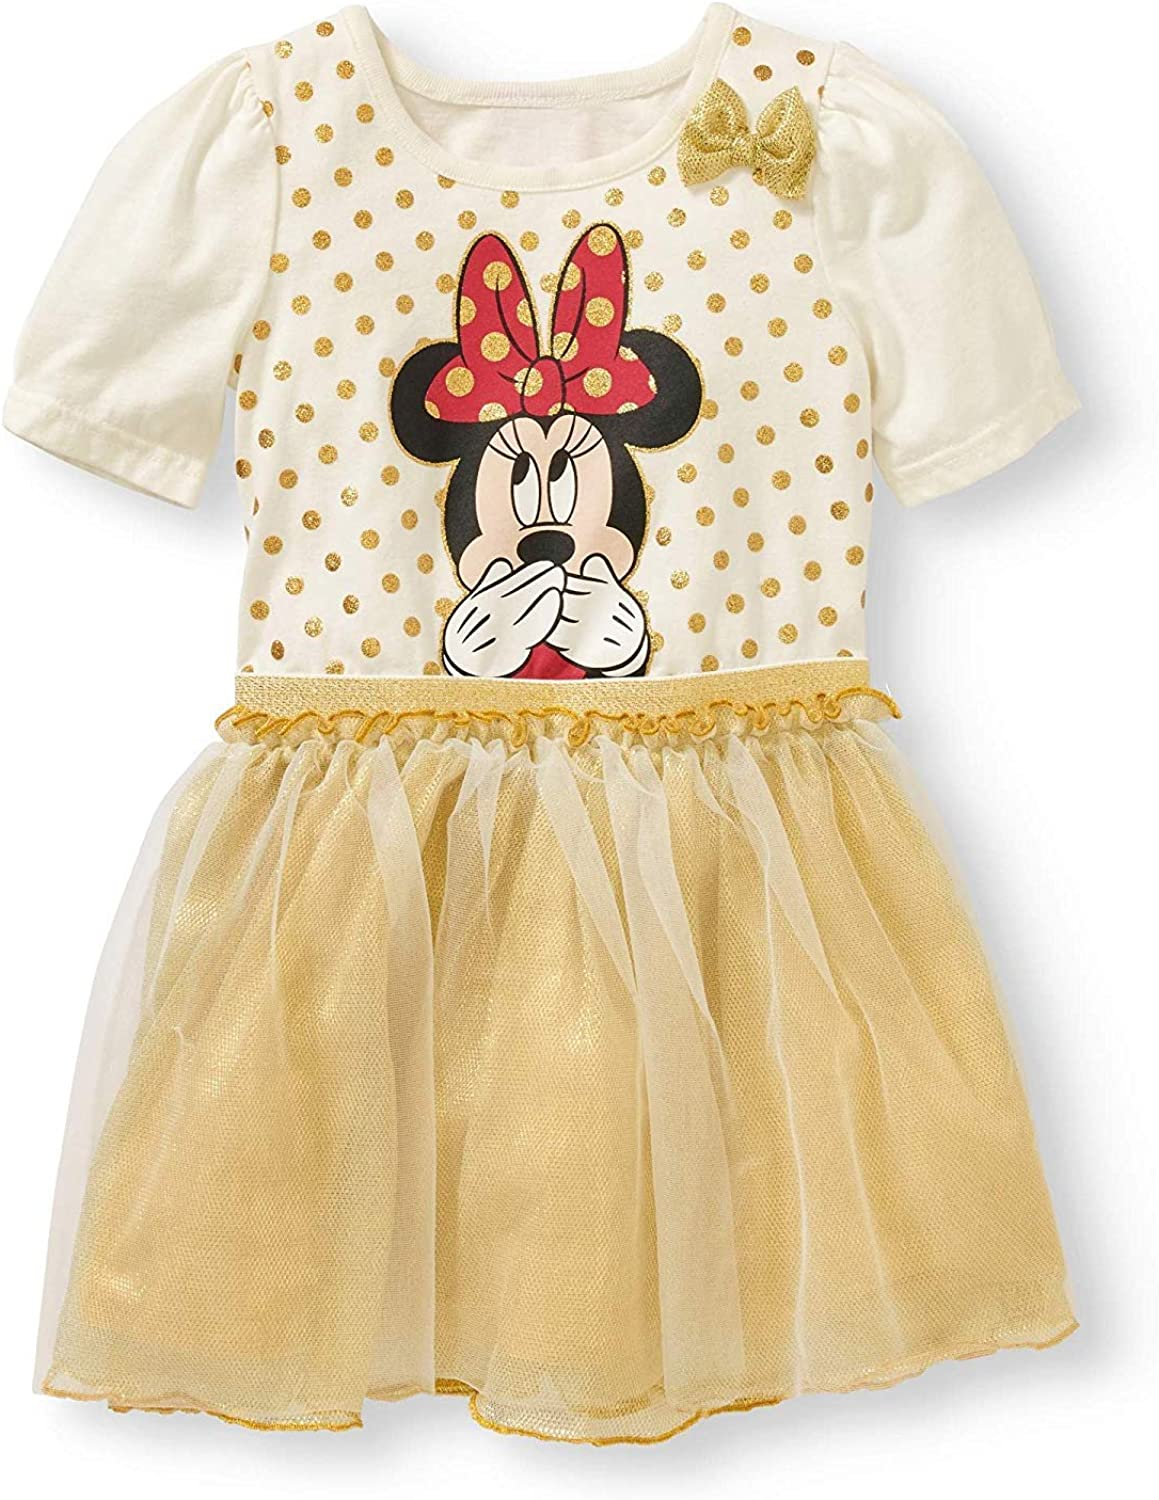 NEW Toddler Girl Dress Size 3T Minnie Mouse Short Sleeve Gold Skirt Party Outfit